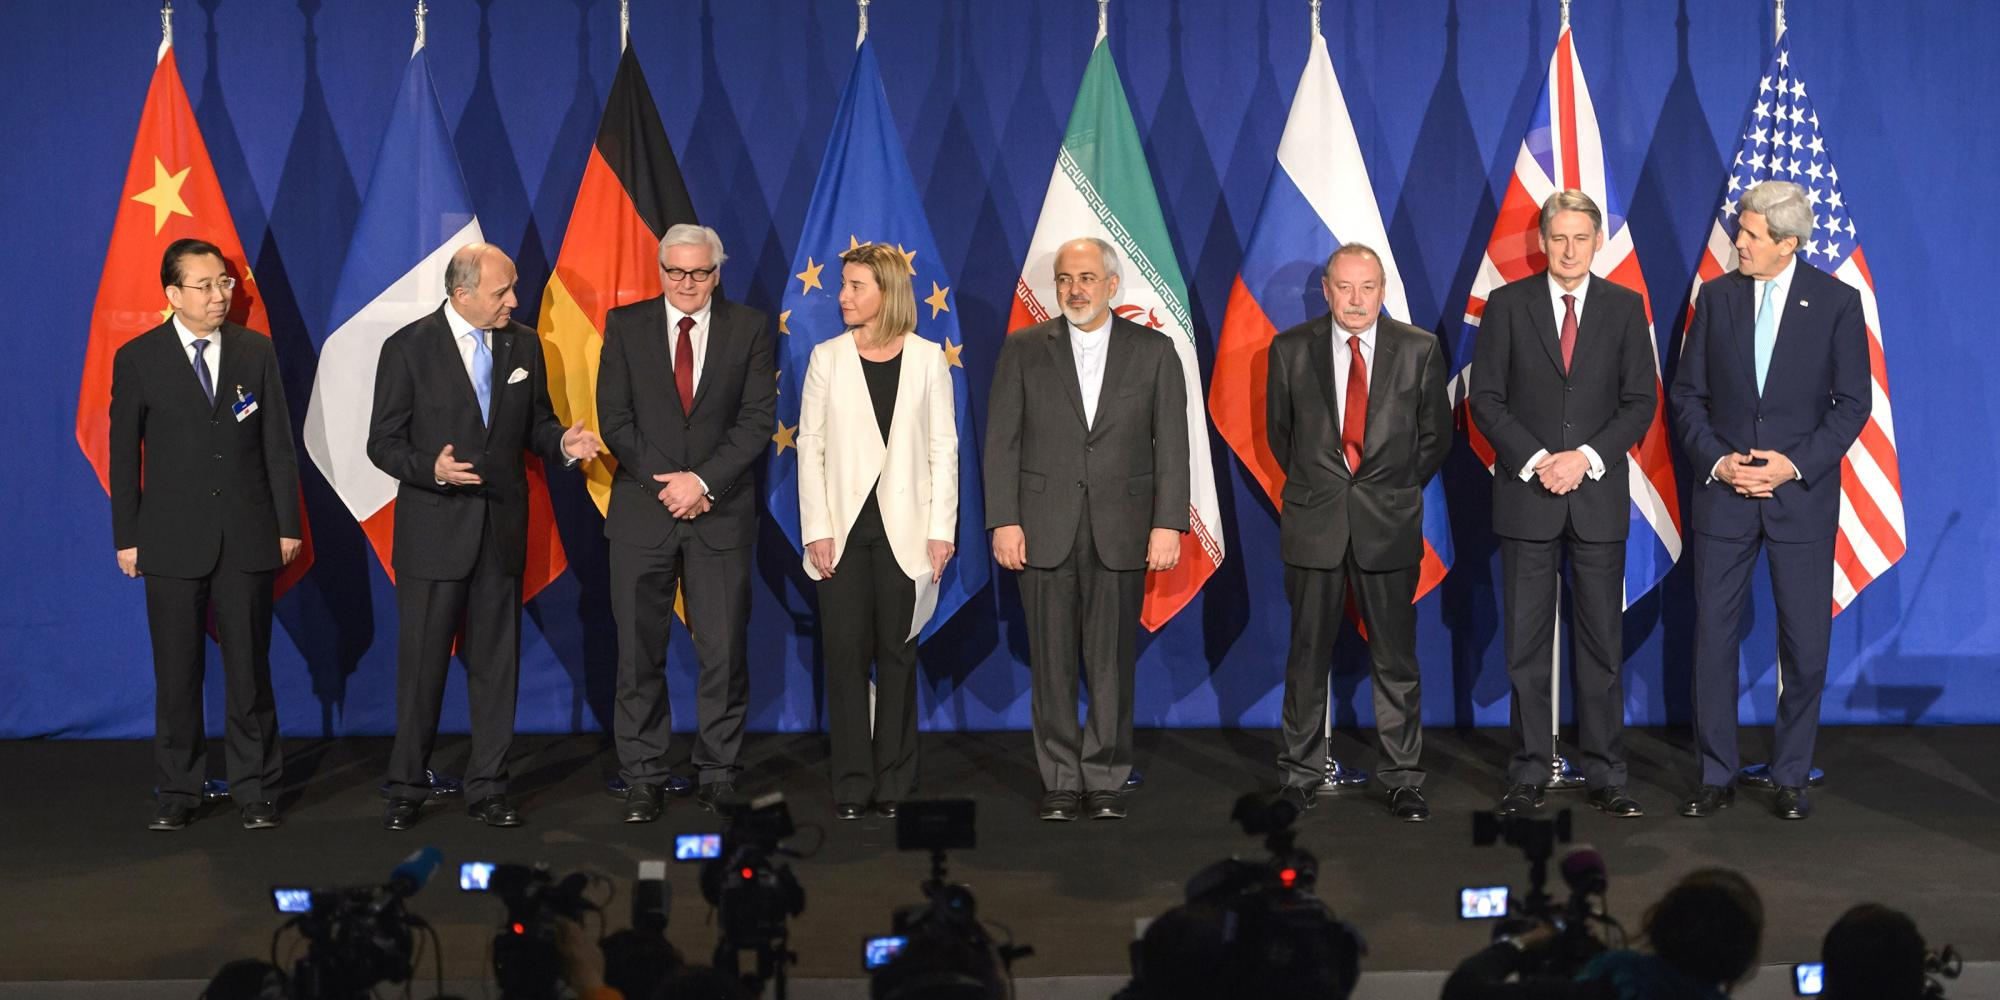 Officials in suits stand in front of their countries' respective flags, in front of a room of reporters.